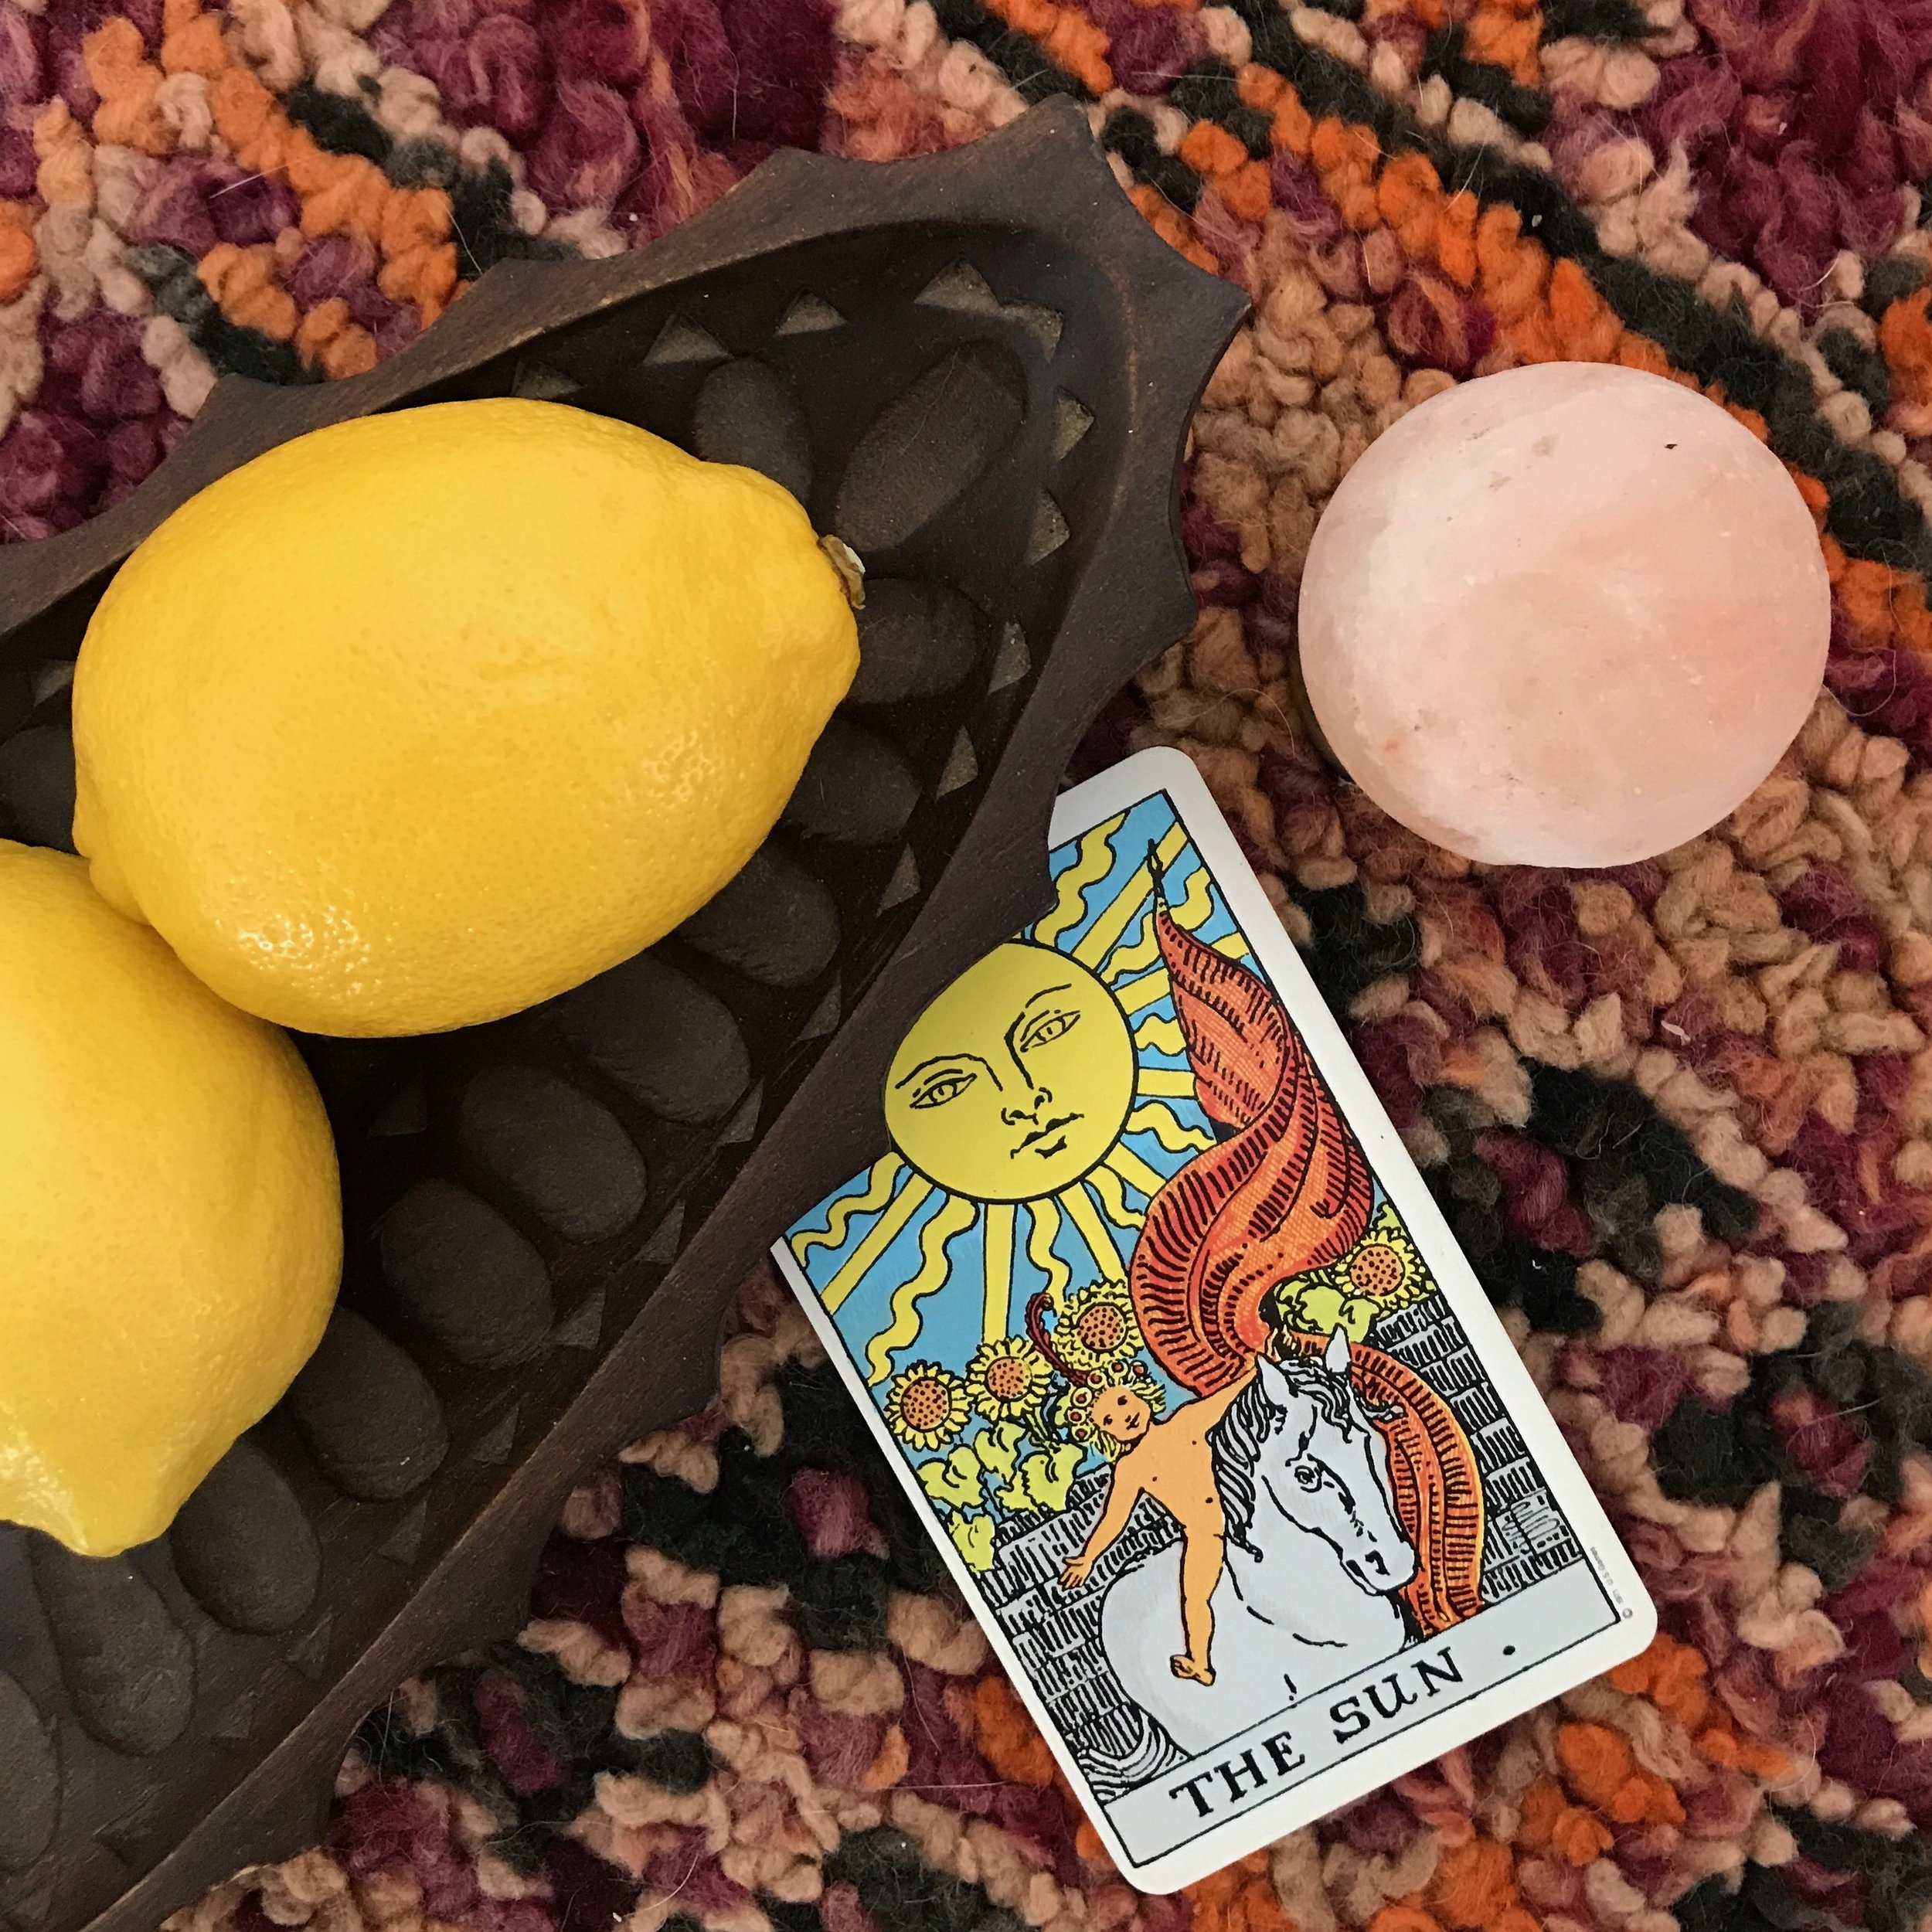 LIT// - A mood board and playlist inspired by The Sun card of the Tarotvitality/truth/illumination